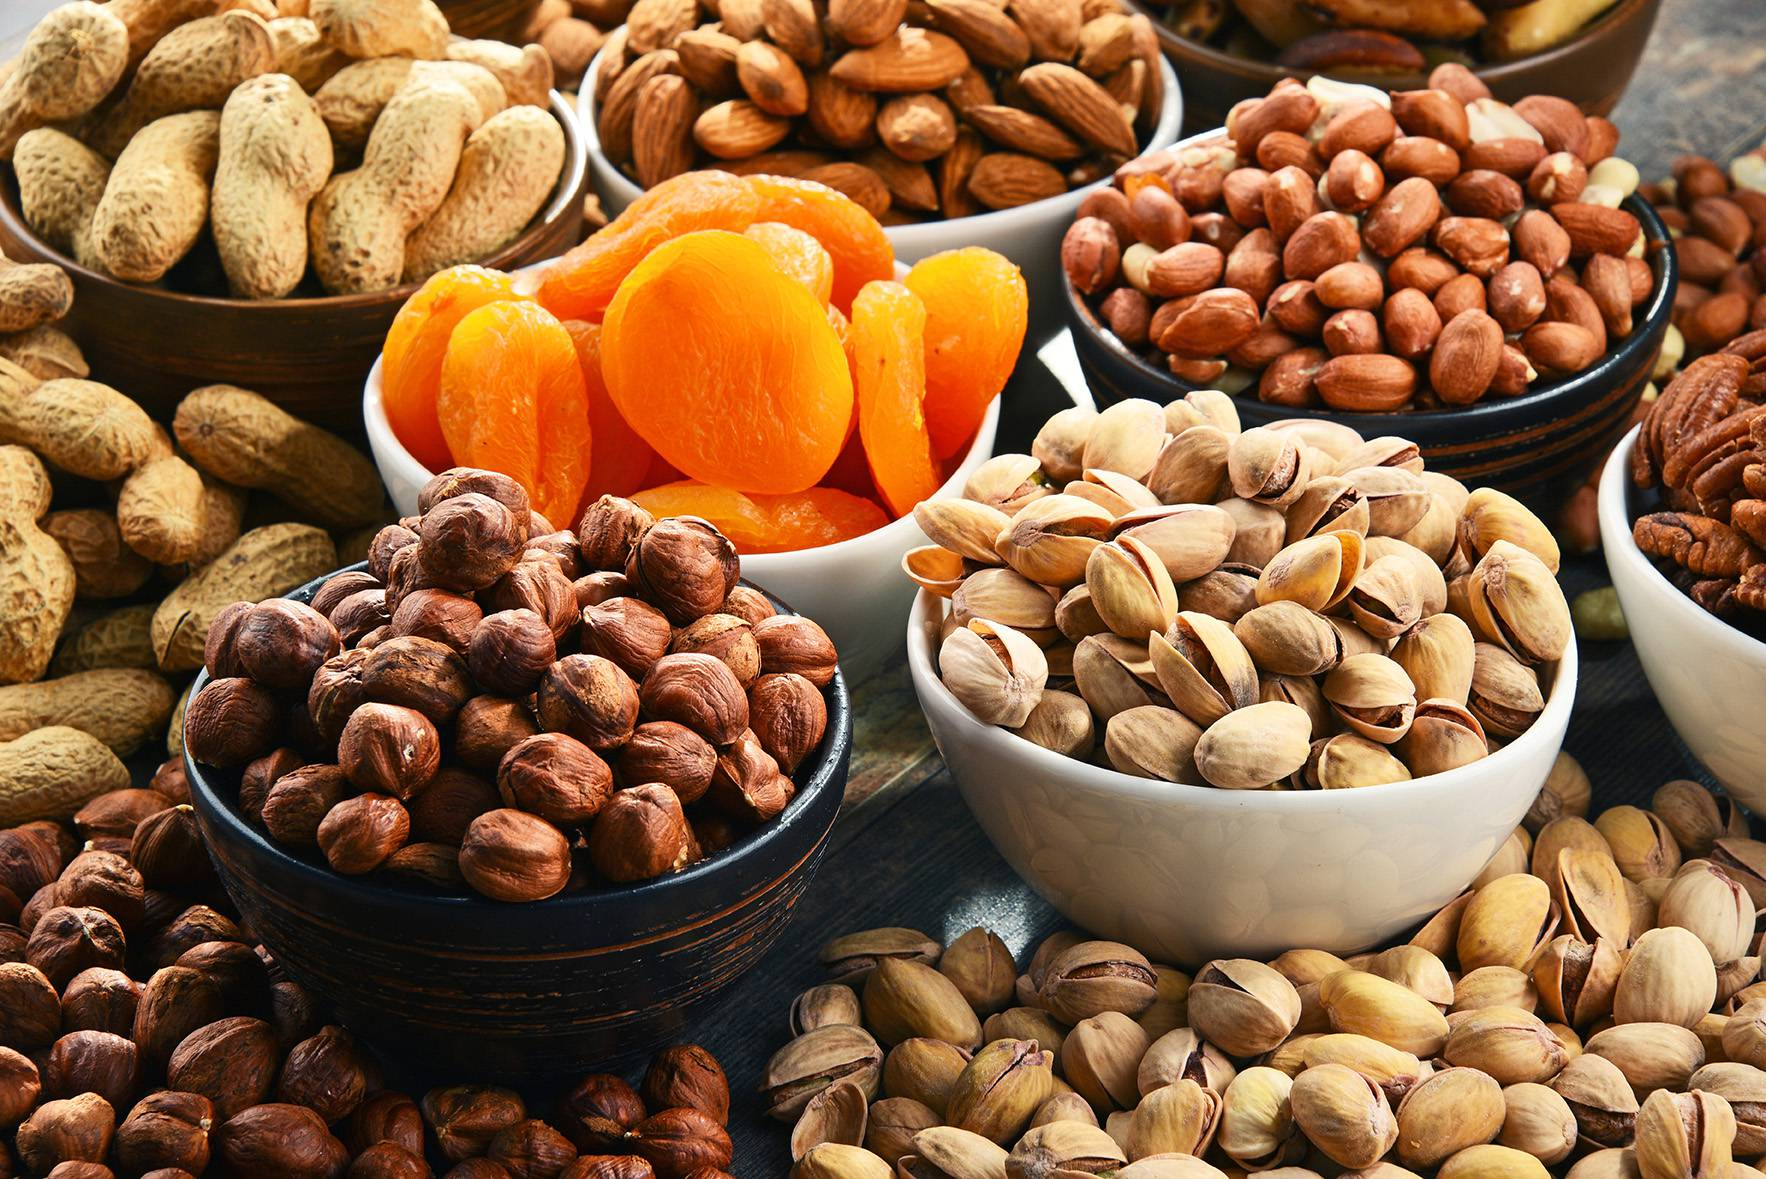 All kinds of nuts